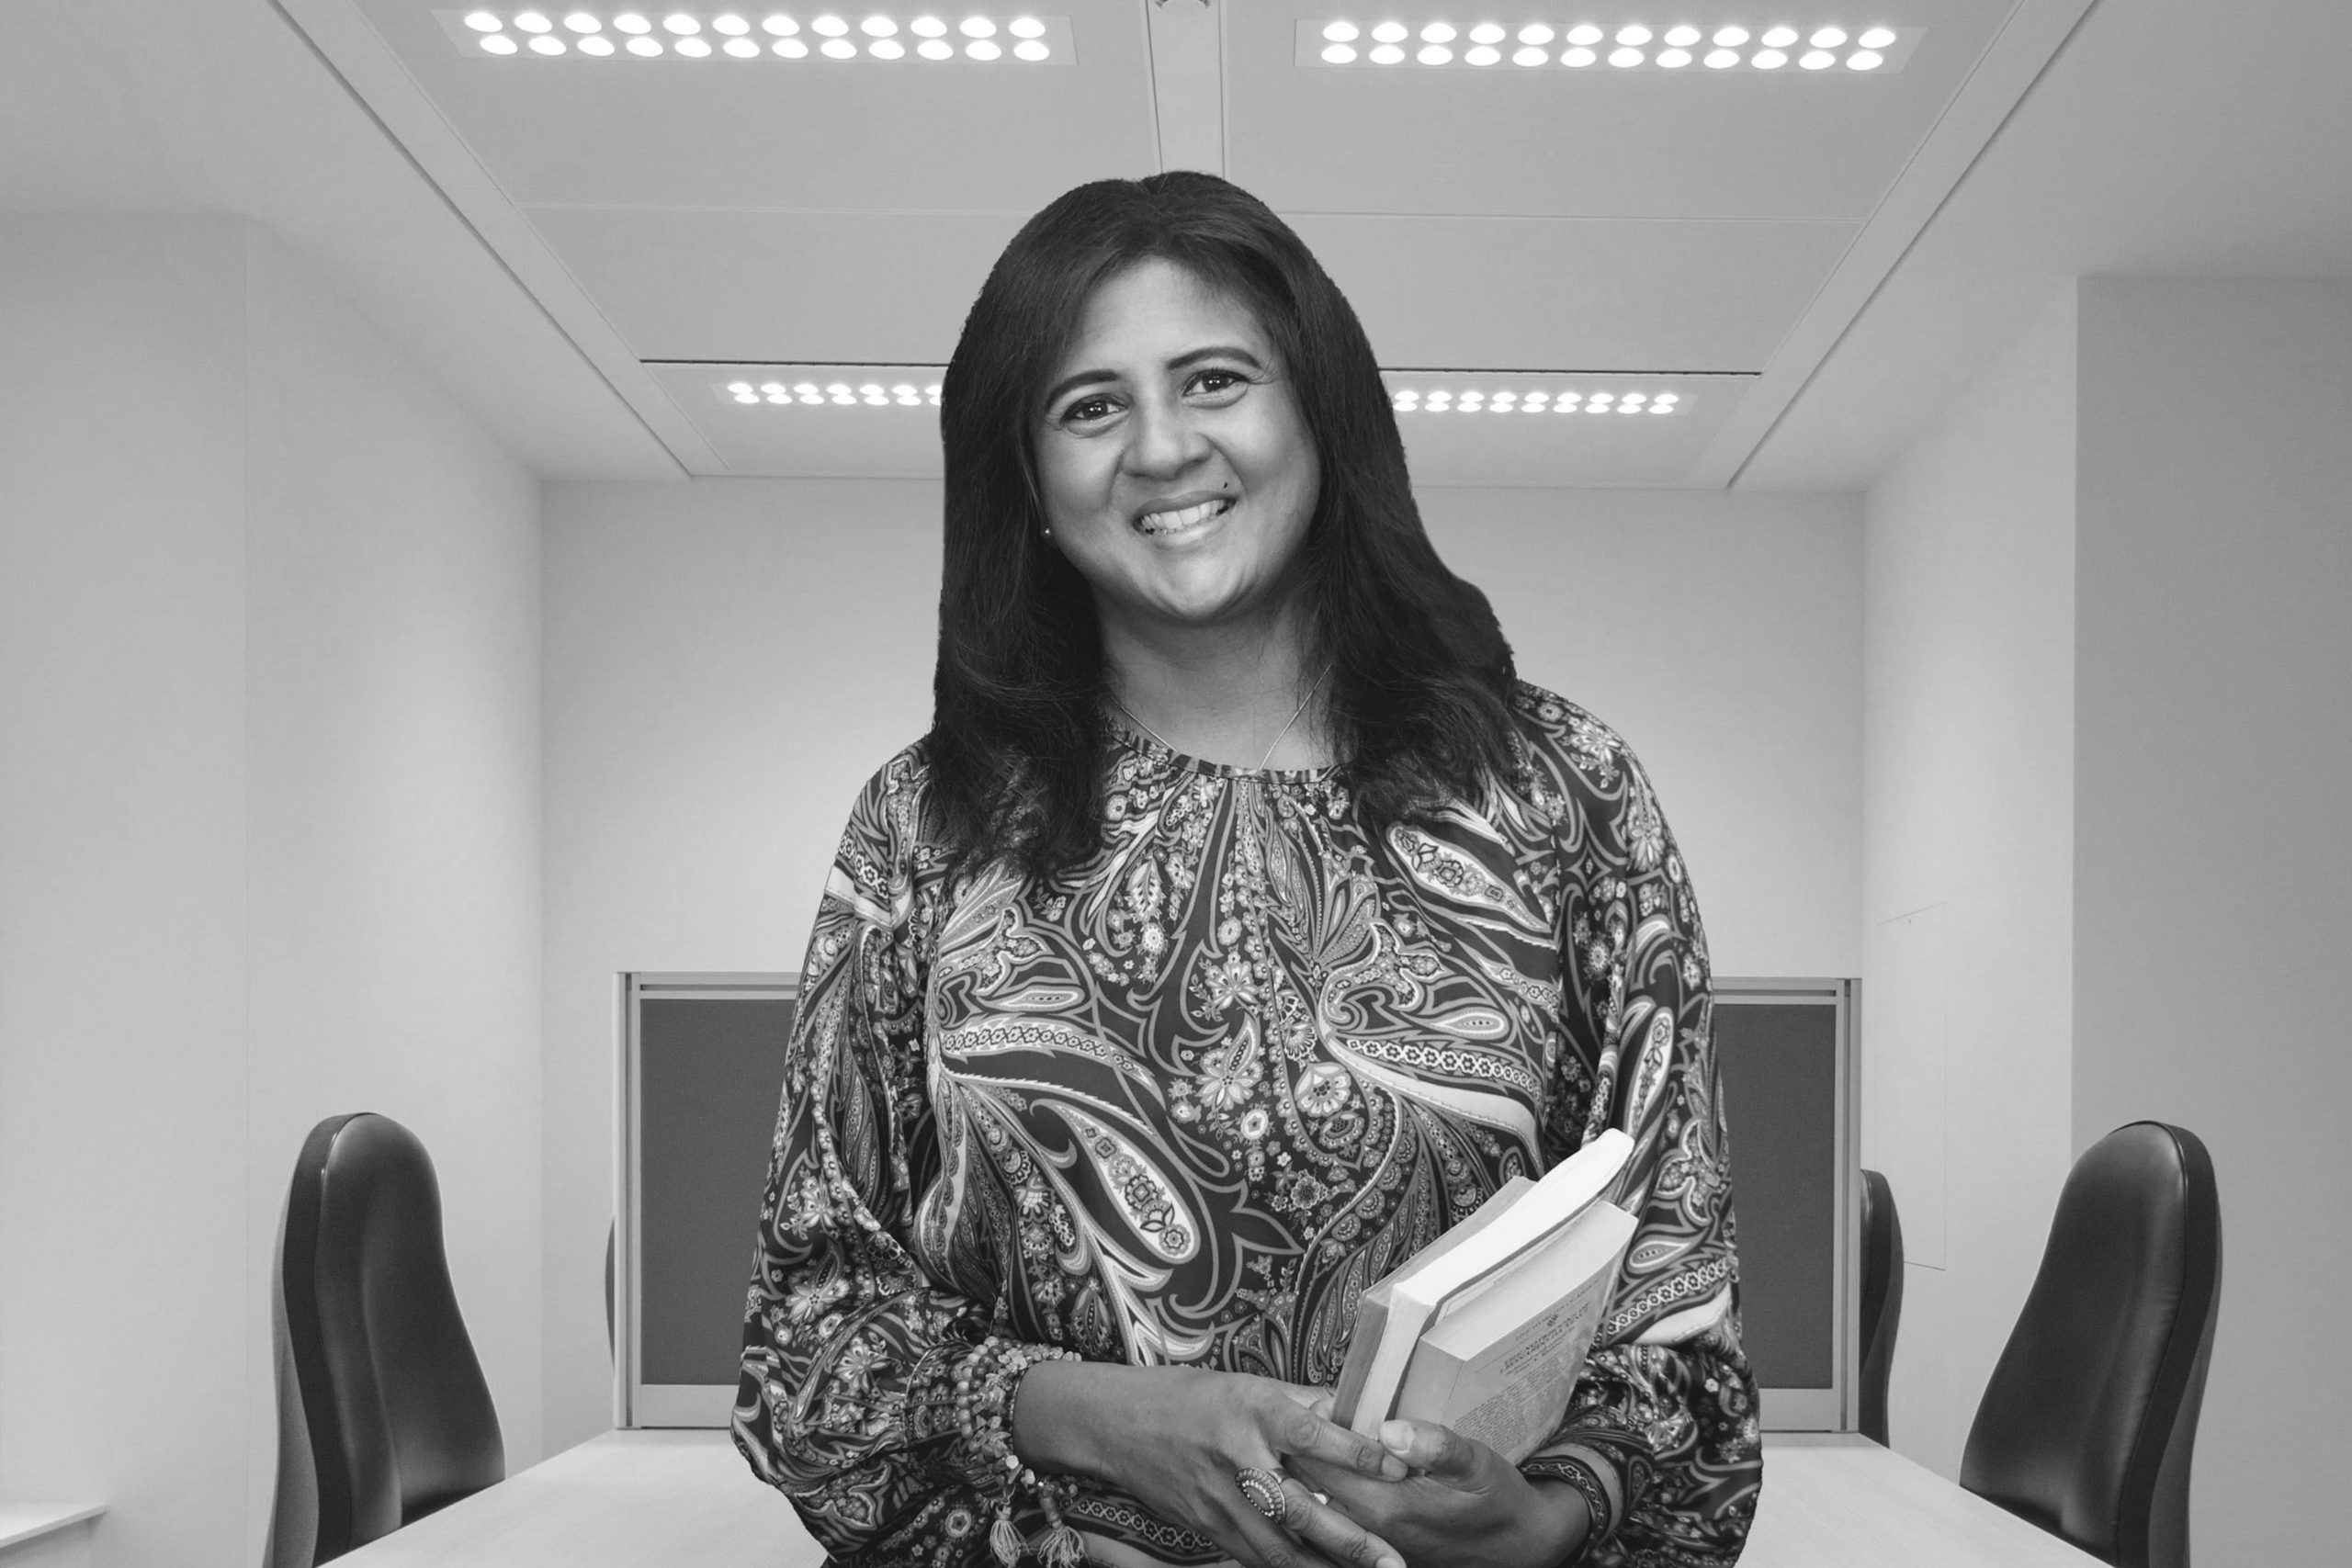 ambika standing with books in hand